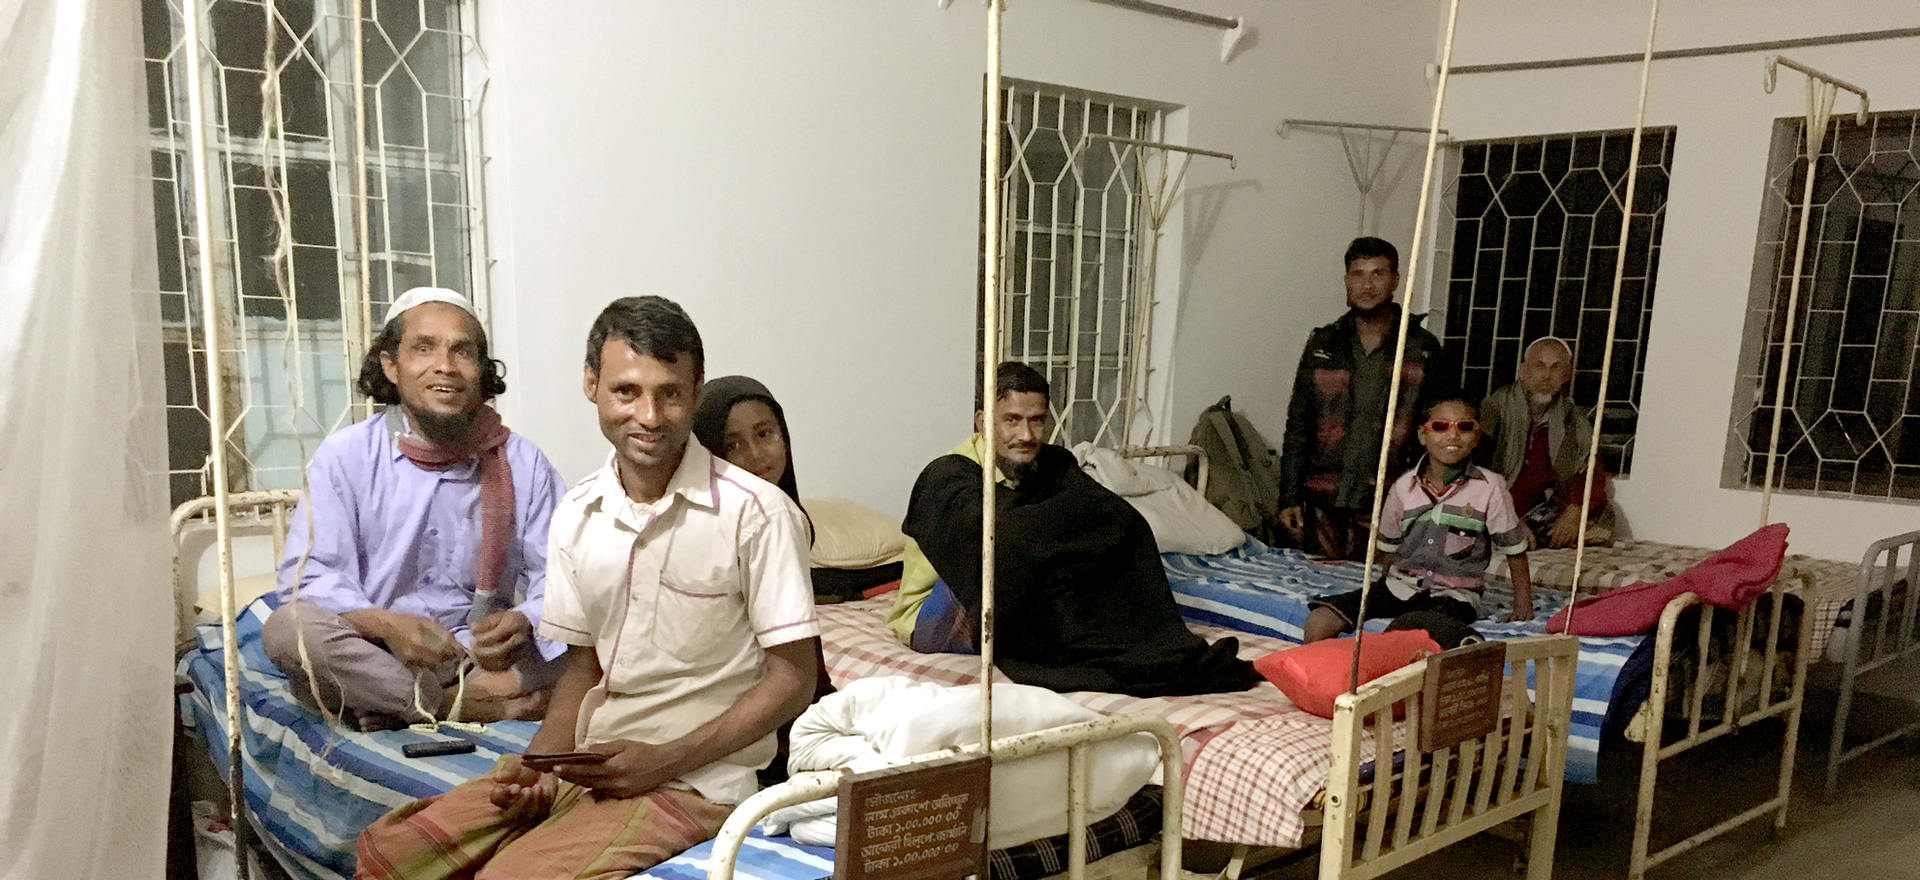 Patients at the hospital